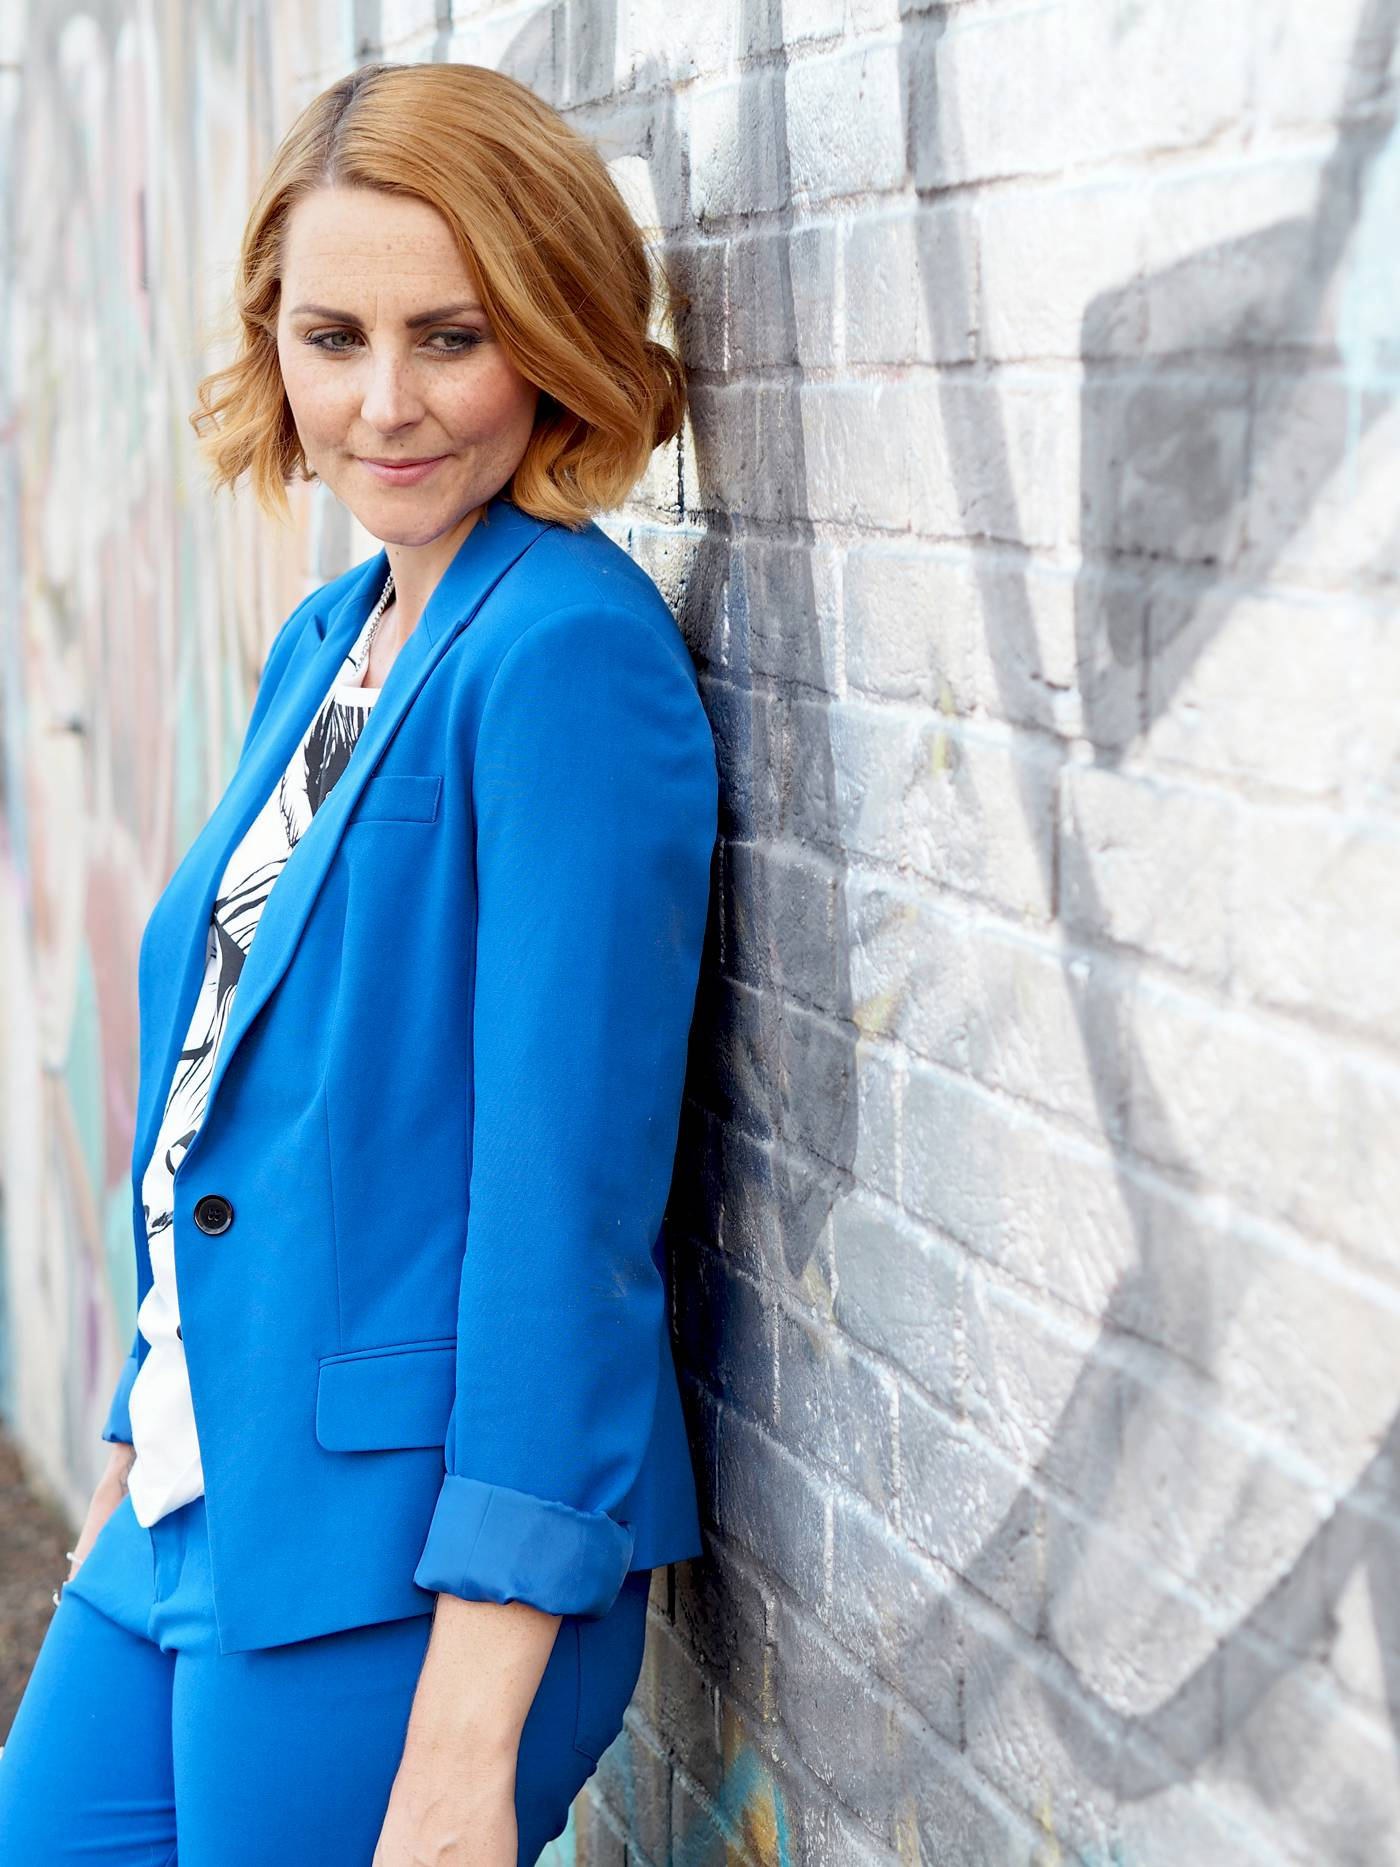 blue trouser suit with graphic tshirt